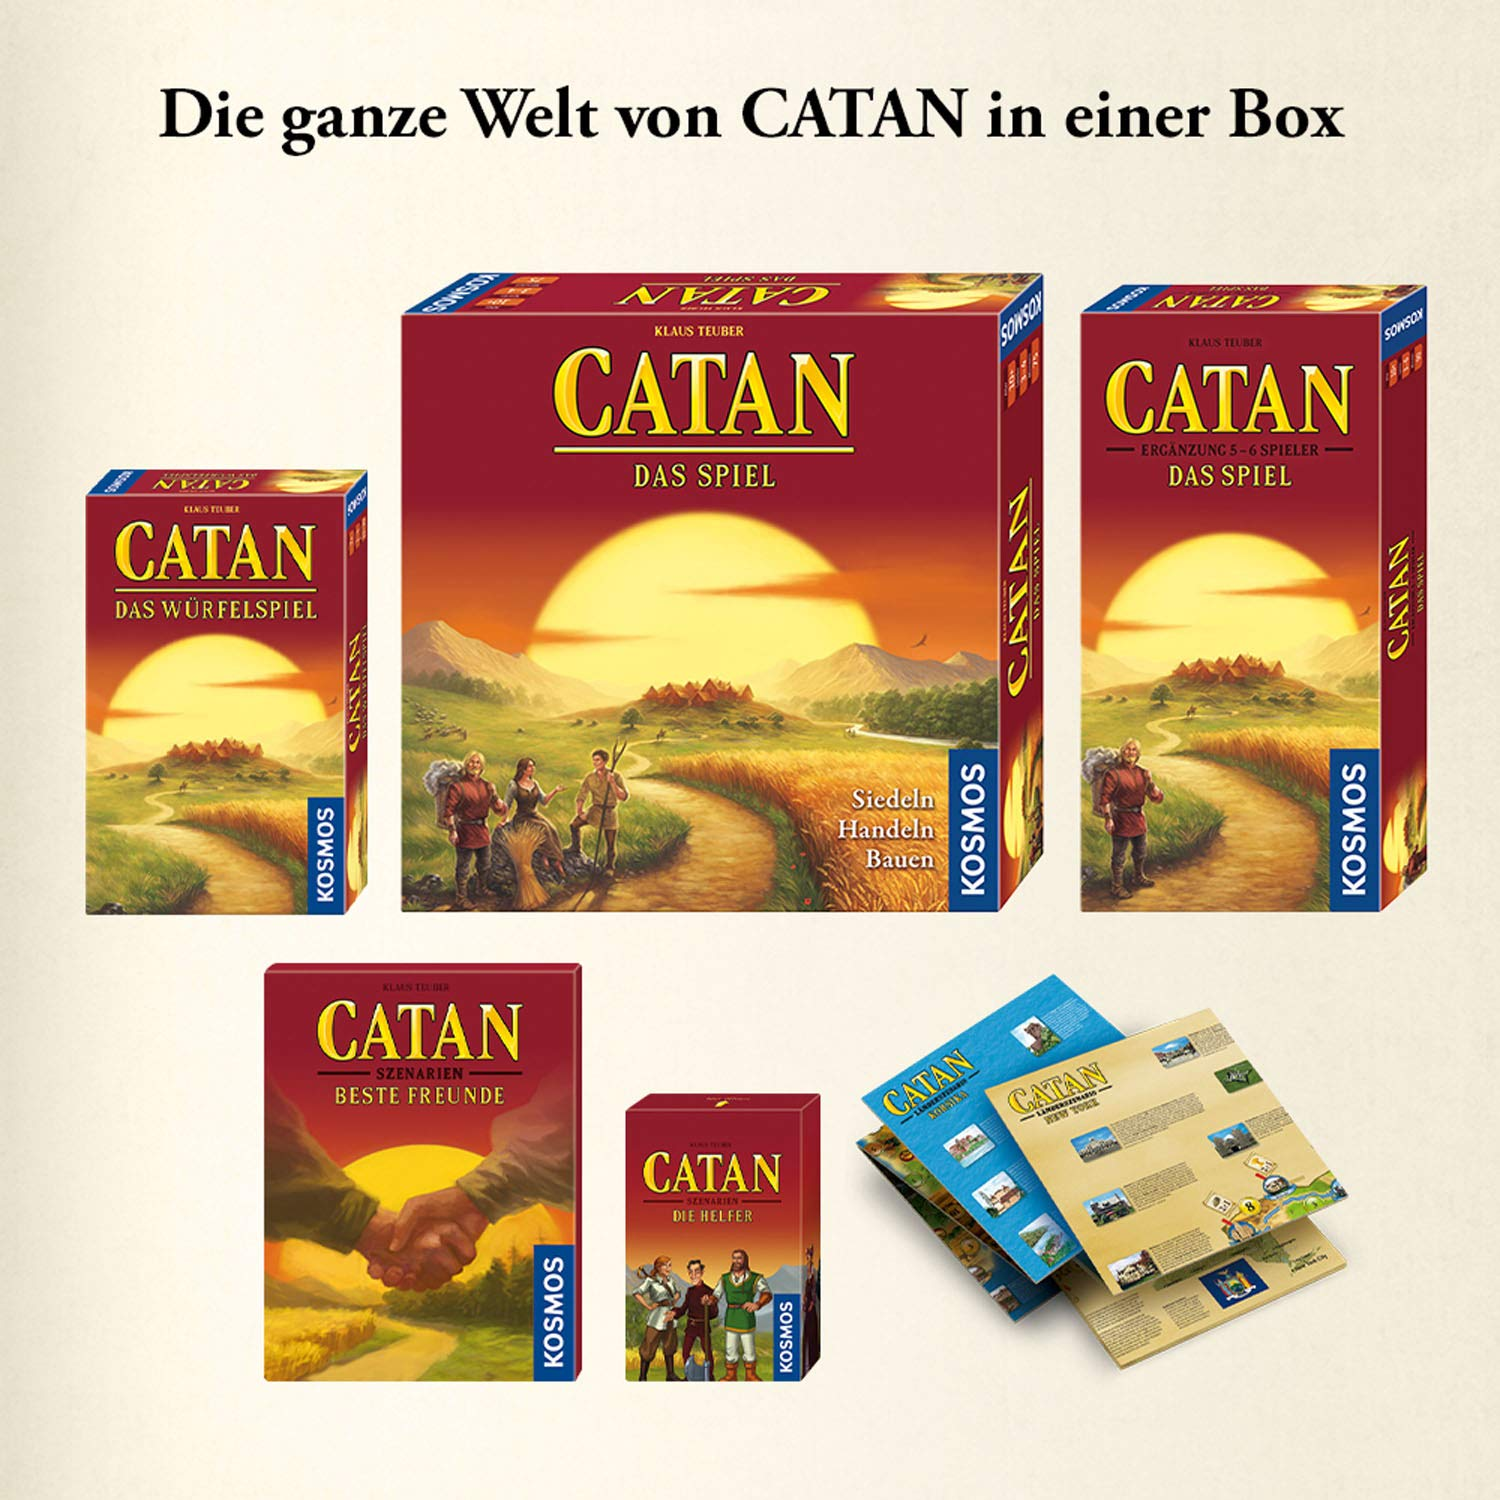 Catan - Big Box 2019: Amazon.es: Libros en idiomas extranjeros